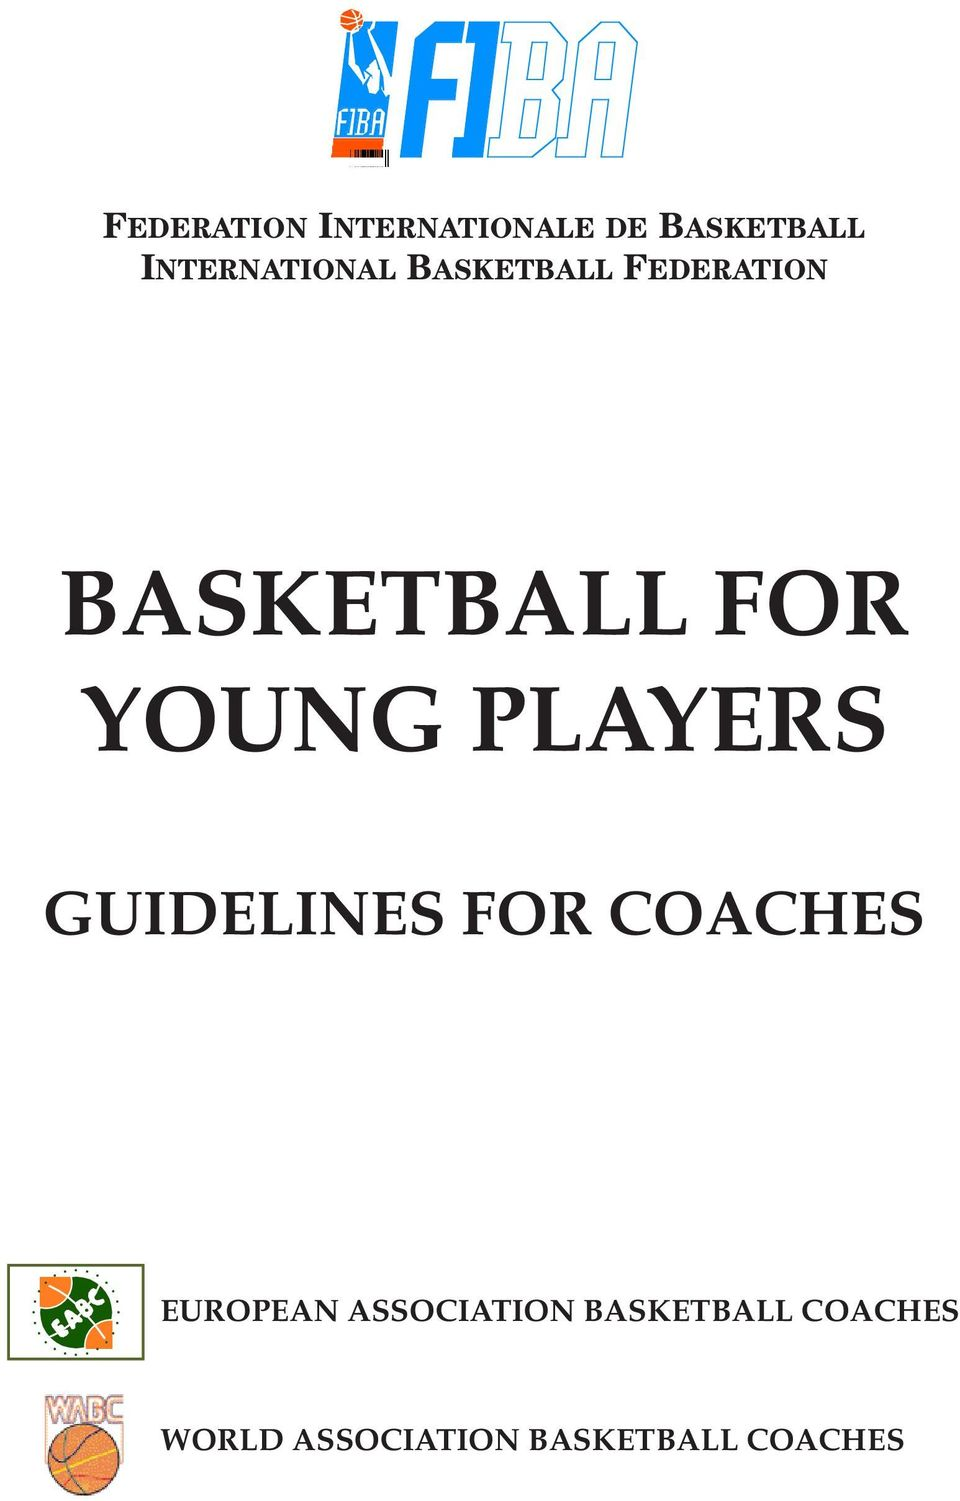 YOUNG PLAYERS GUIDELINES FOR COACHES EUROPEAN